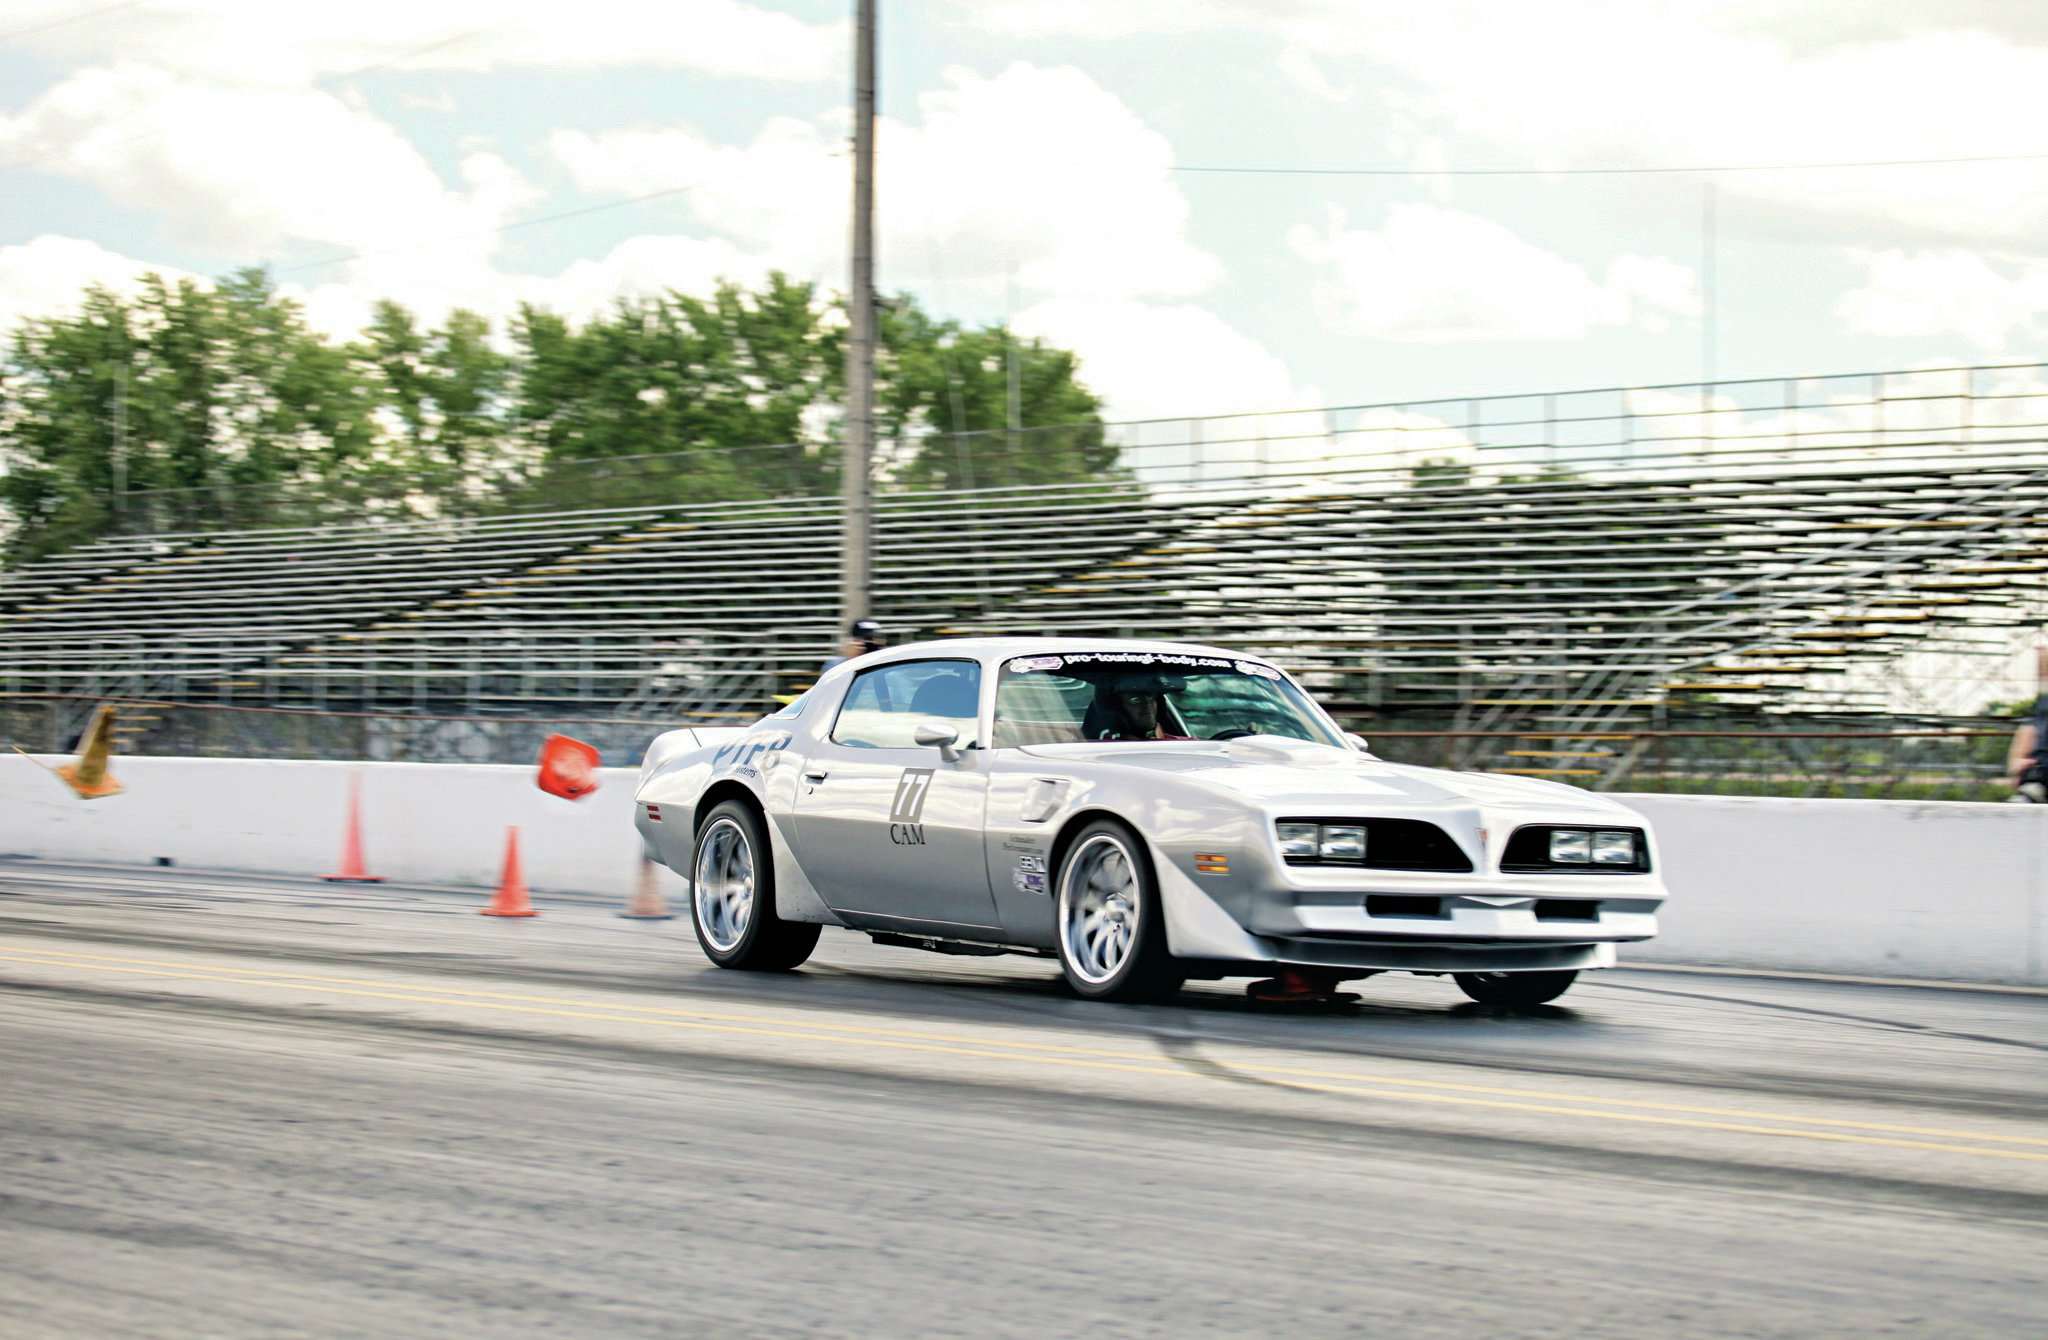 Travis Hartwell won the Speed-Stop last year and almost repeated, losing only to Popp's amazing average time. The Firebird is Pontiac powered, so kudos for being a true believer. This particular pass he didn't quite get stopped in time—note the flying cone.